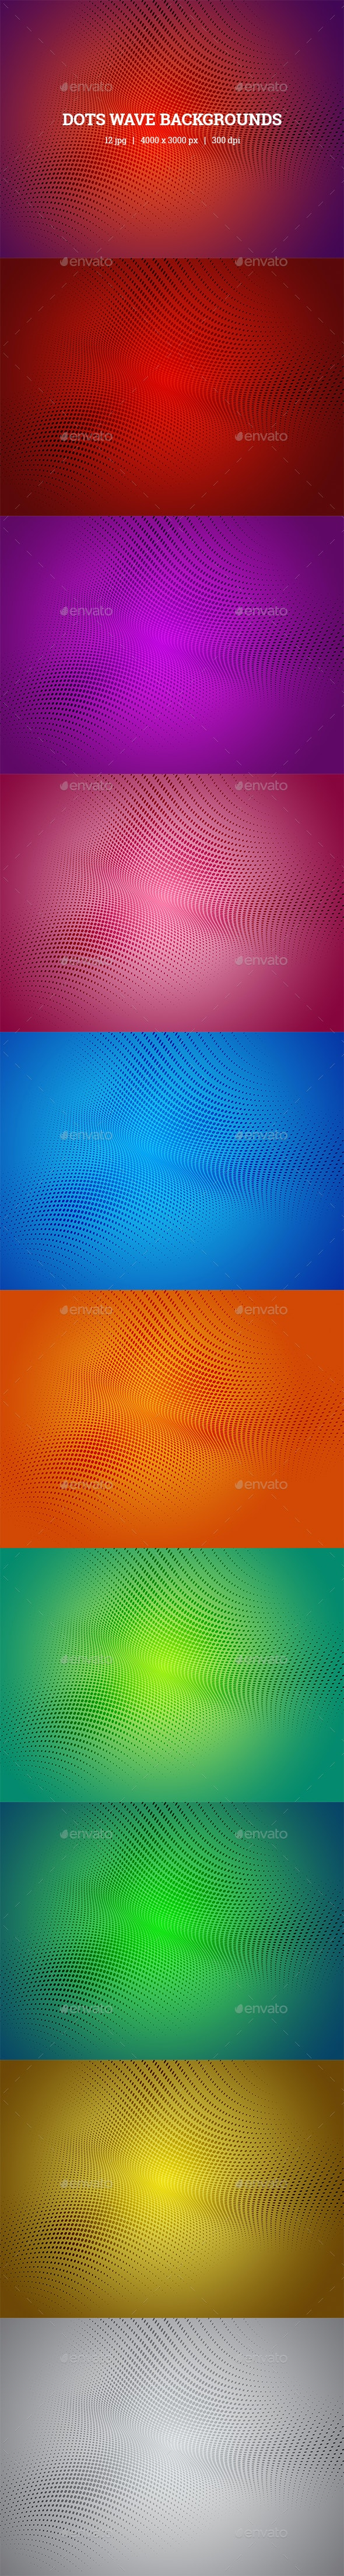 Dots Wave Backgrounds - Backgrounds Graphics